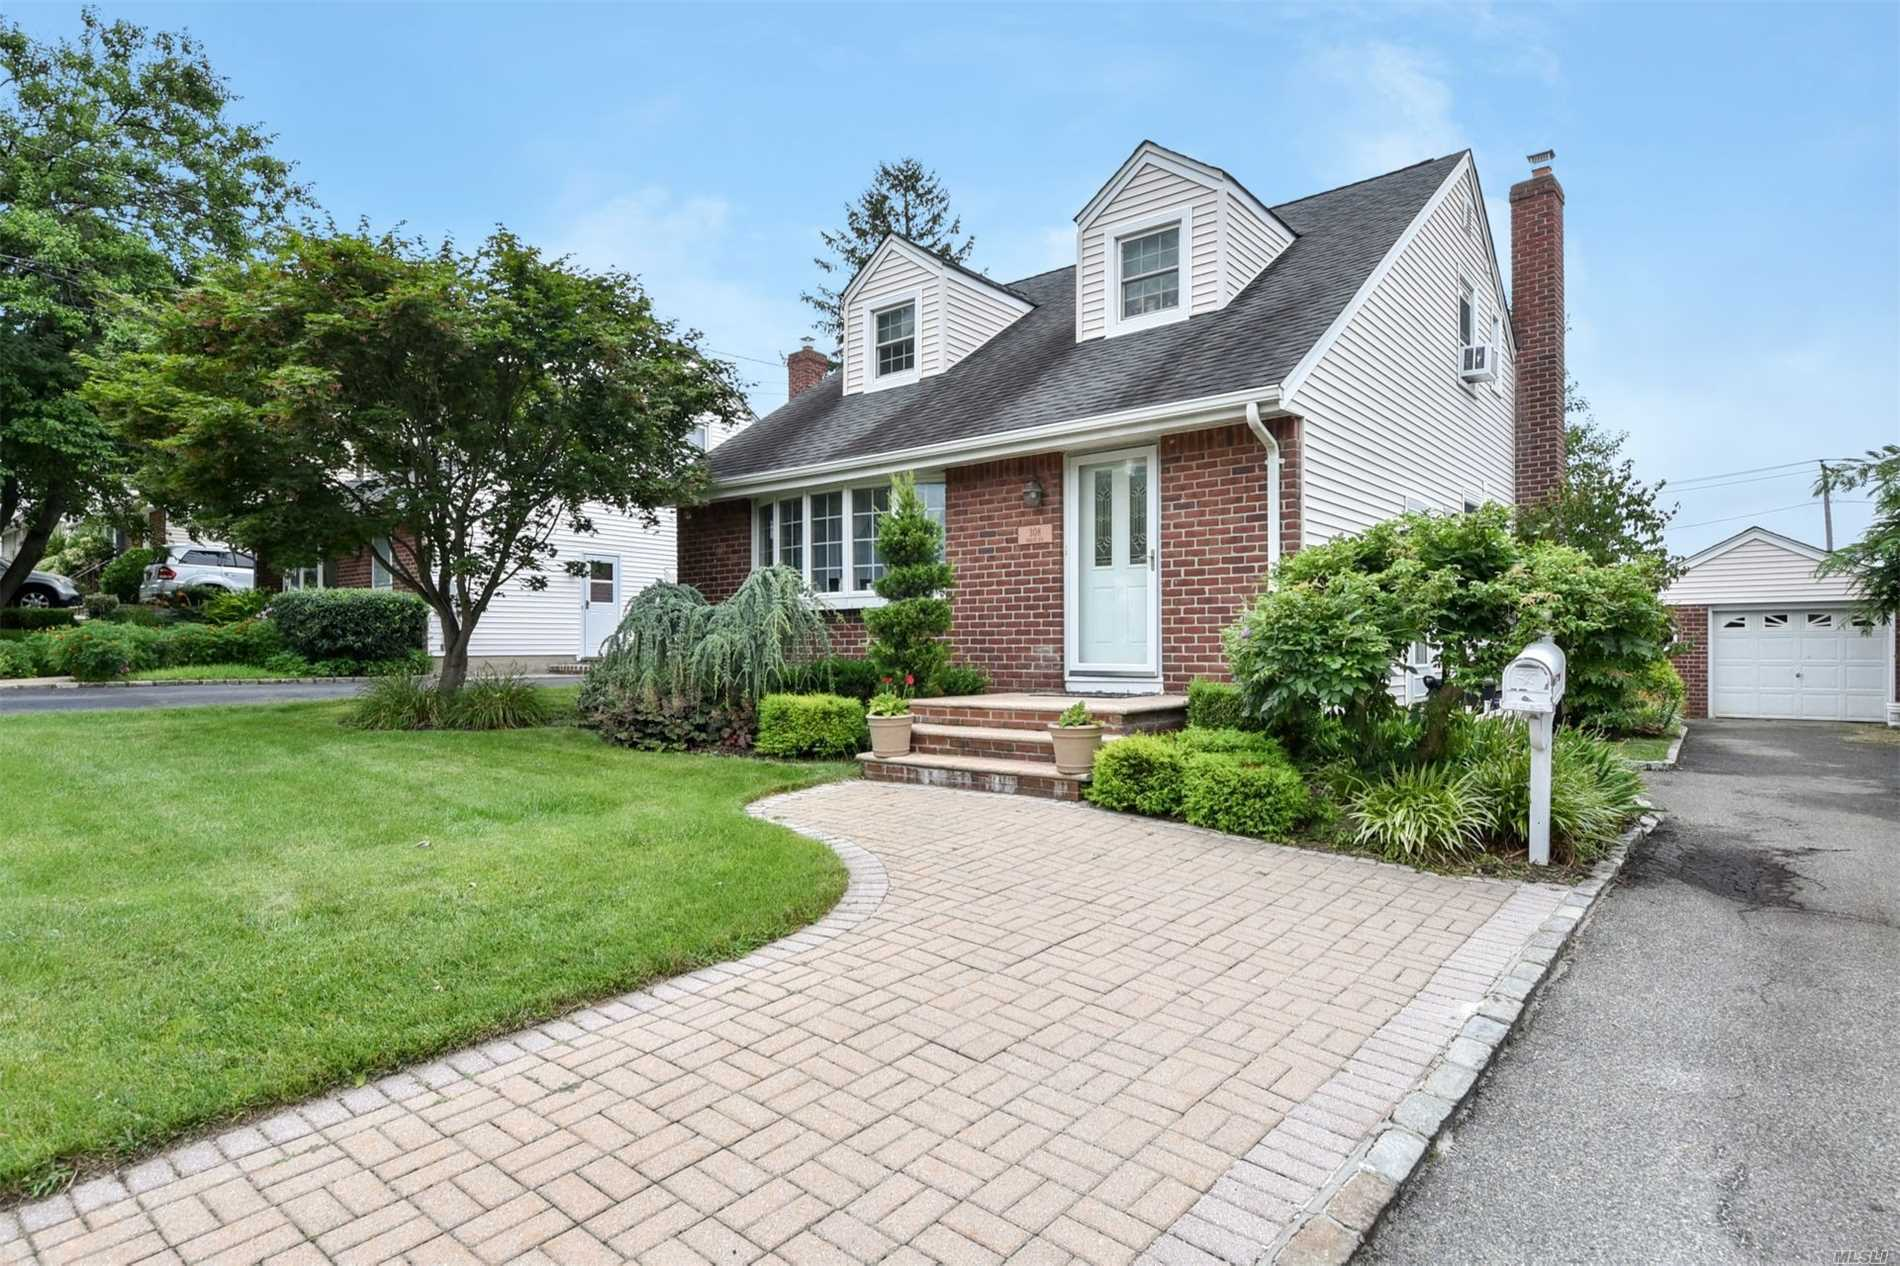 308 Roslyn Ave Carle Place, NY 11514